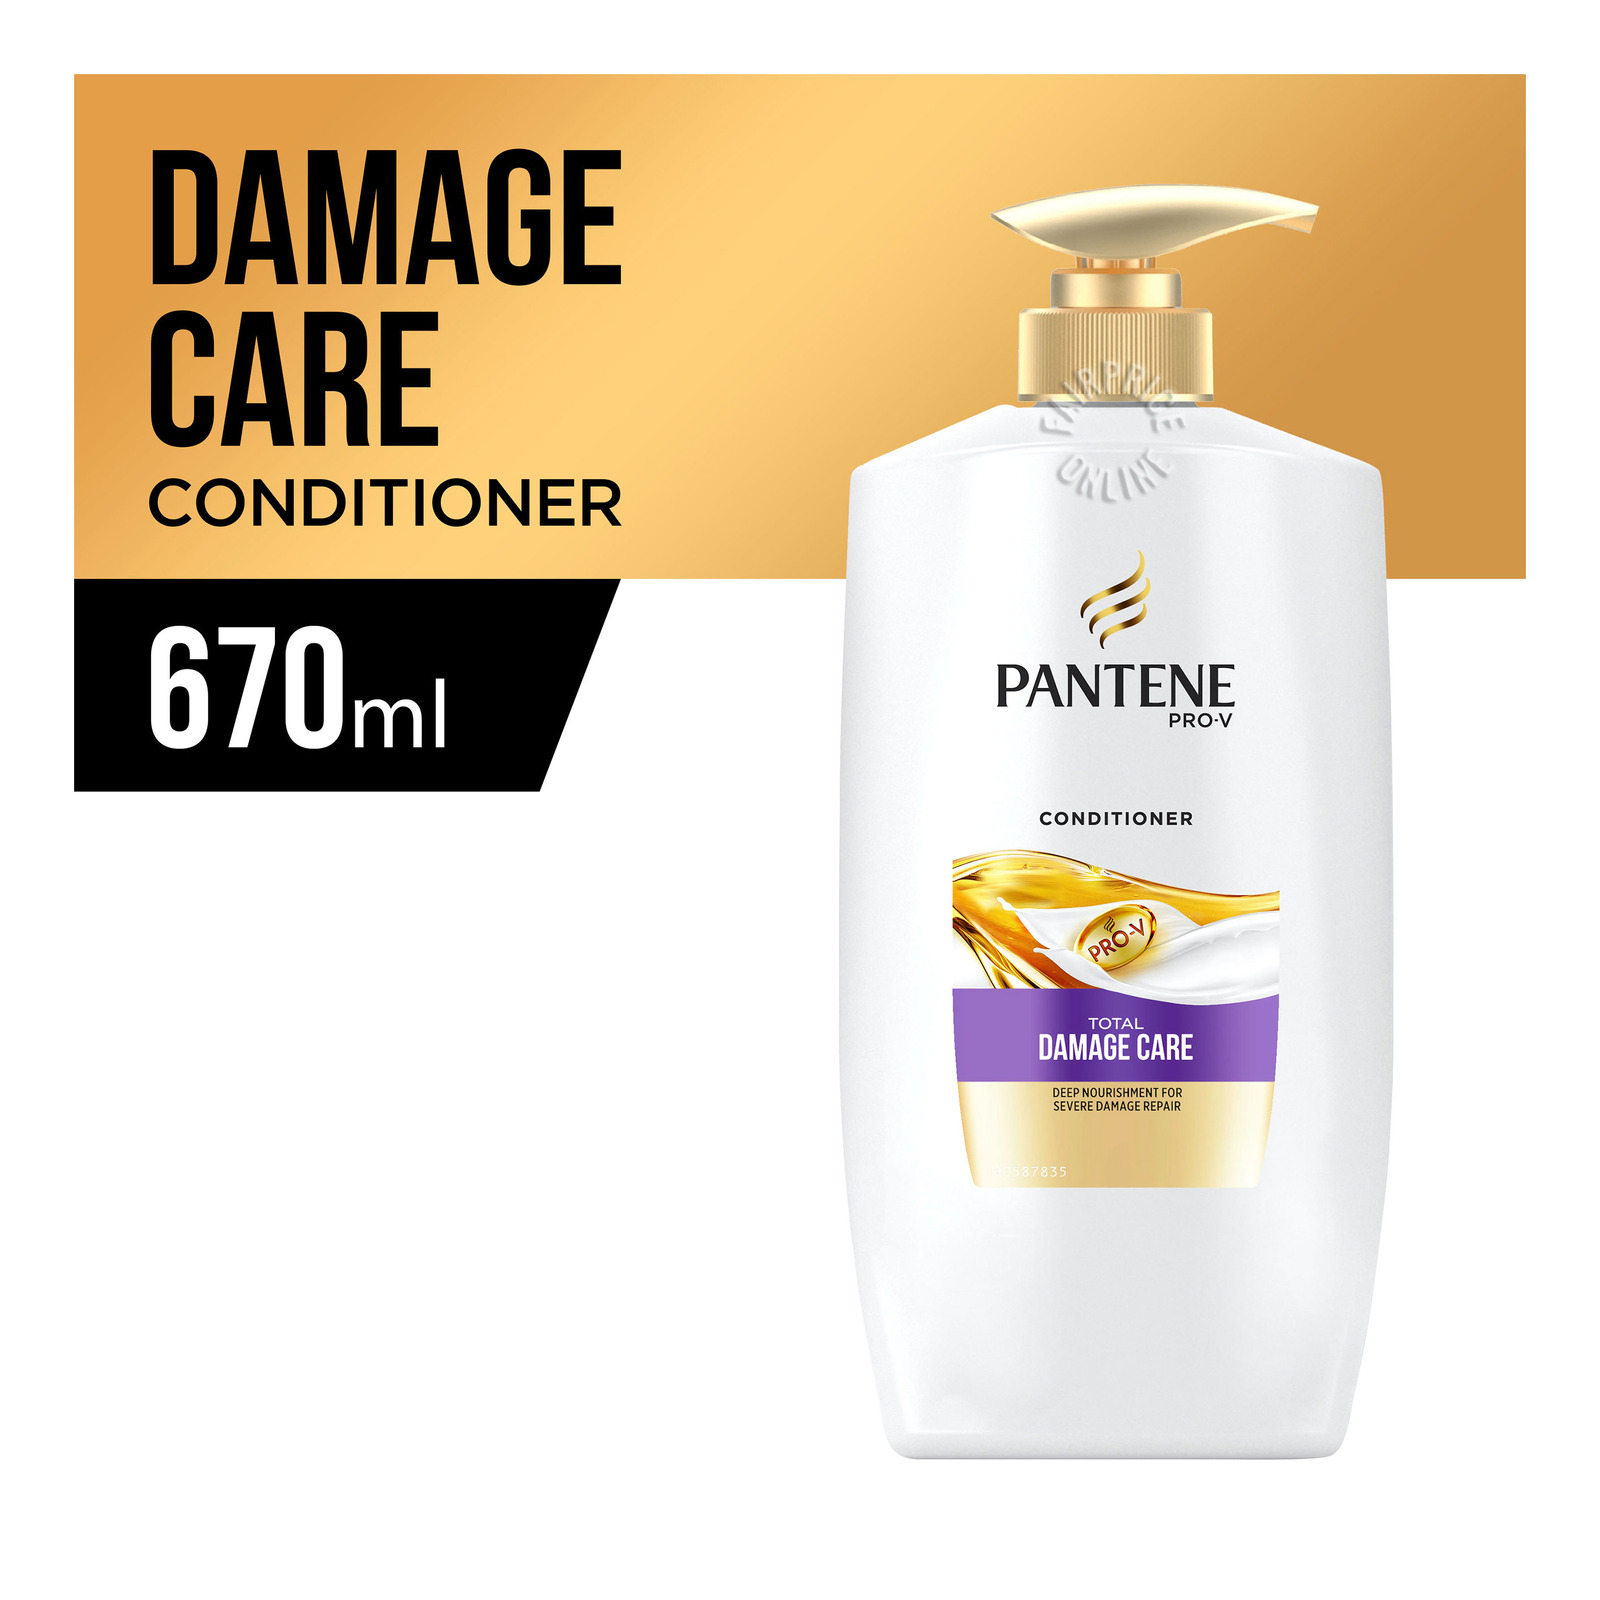 Pantene Pro-V Conditioner - Total Damage Care